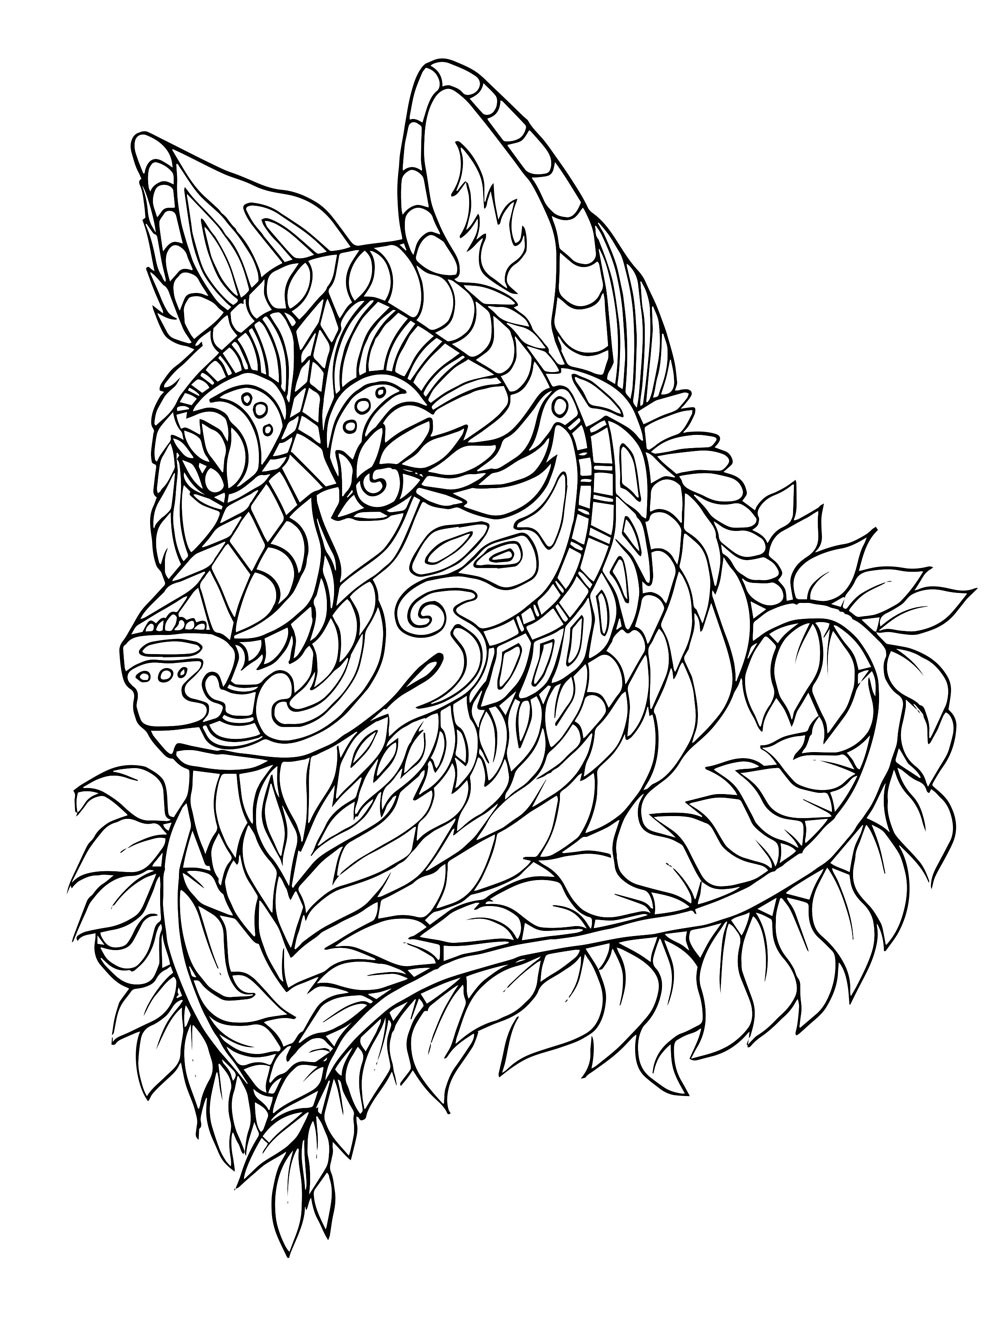 Adult Stress Coloring Books  Stress Relief Coloring Pages Animals Free